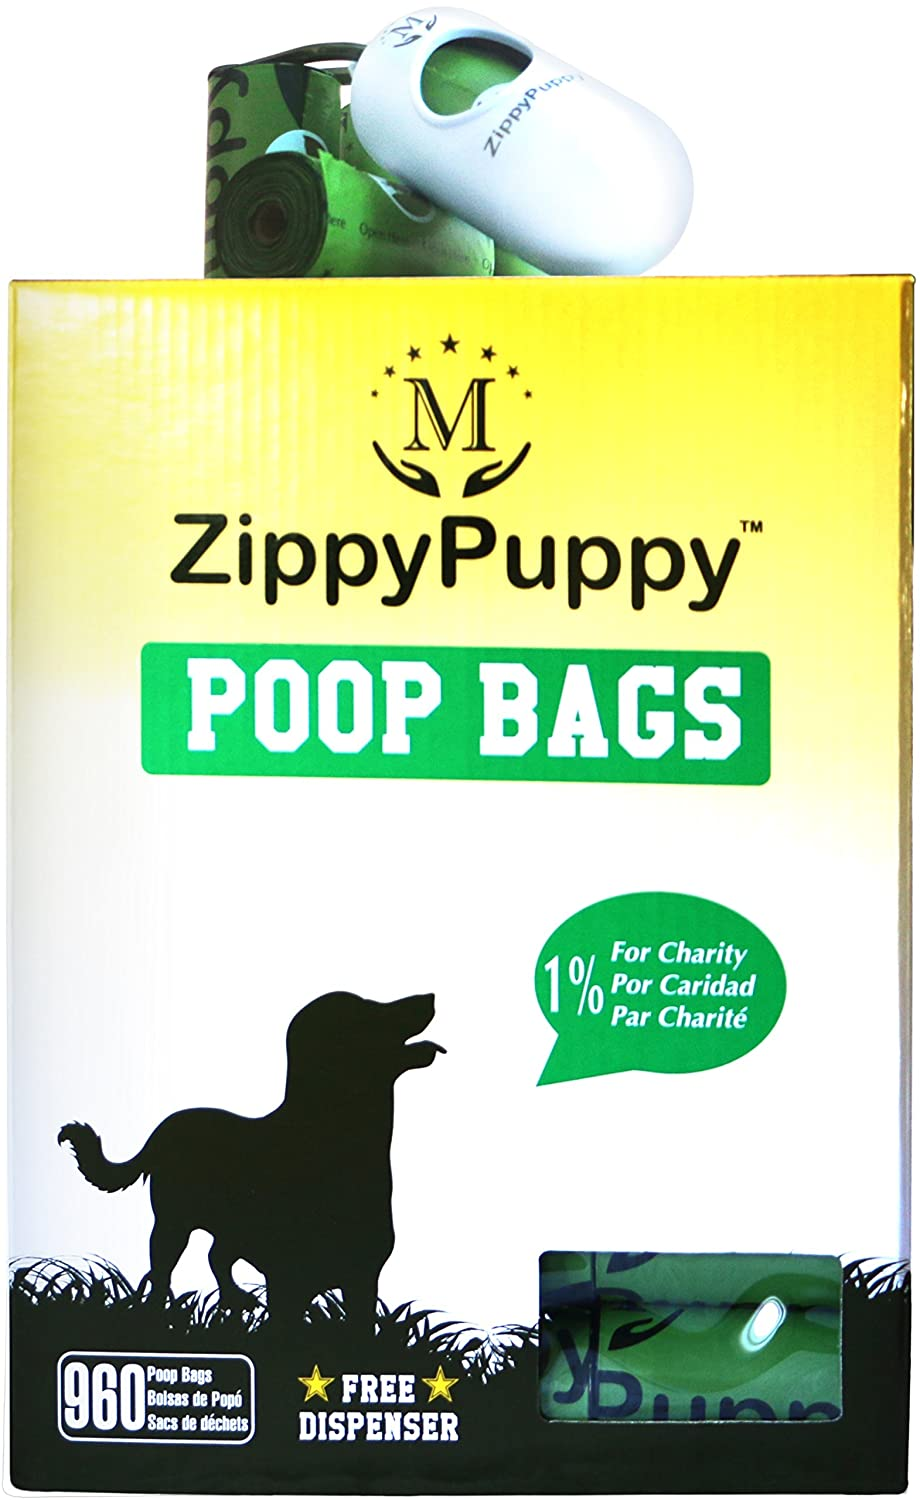 960 Unscented Bags with Dispenser 960 Biodegradable Dog Poop Bags with Stylish Universal Dispenser ( 5.99 Value Included) with 64 Refill Rolls. Bags are 15 Microns Thick and Strong. ZippyPuppy (Trademarked) Pet Pooper Scooper Bags are Large, Extra Strong